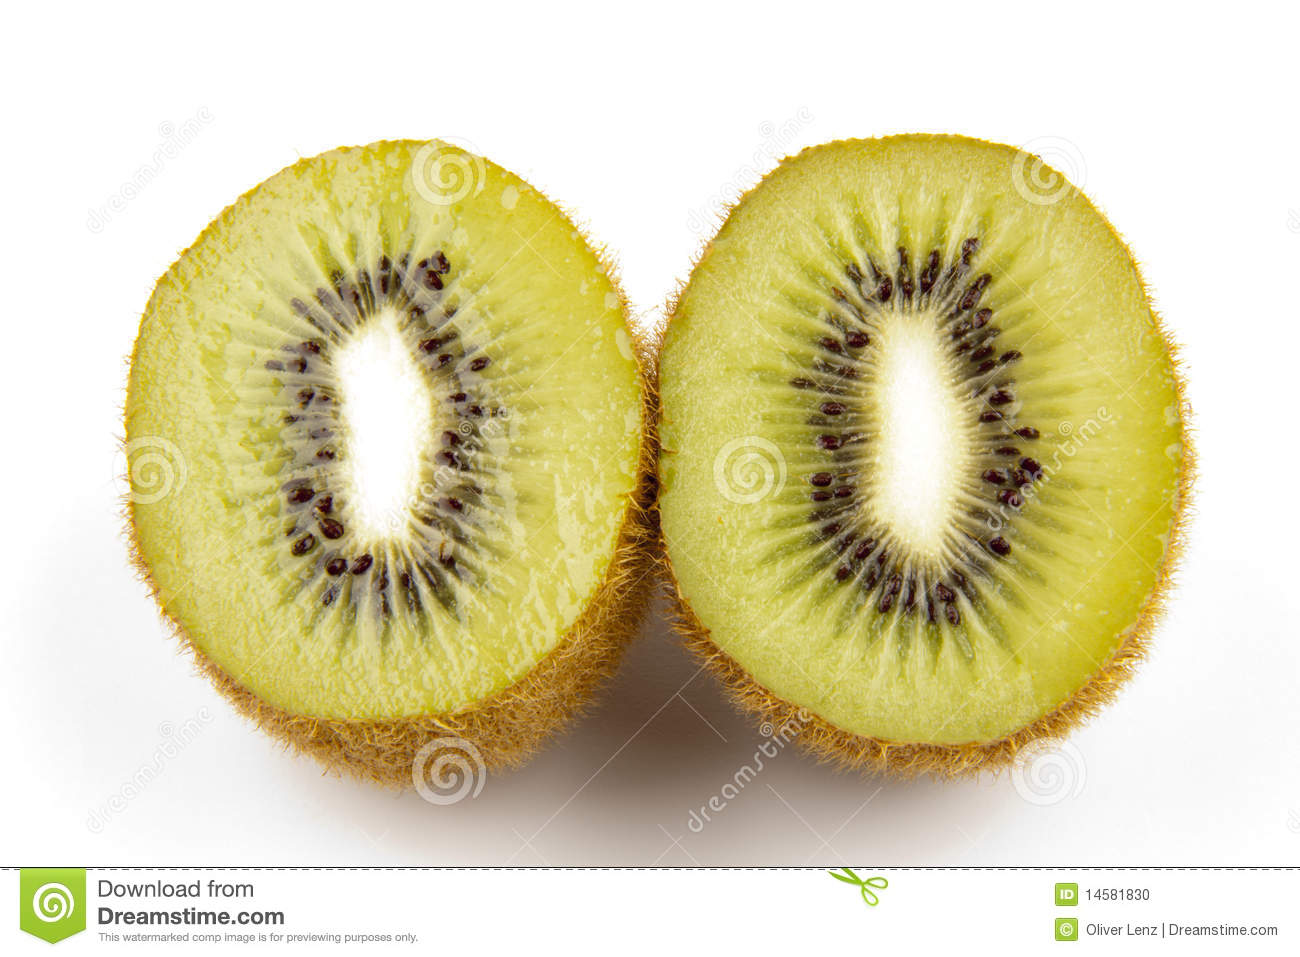 how to know if kiwi is ripe